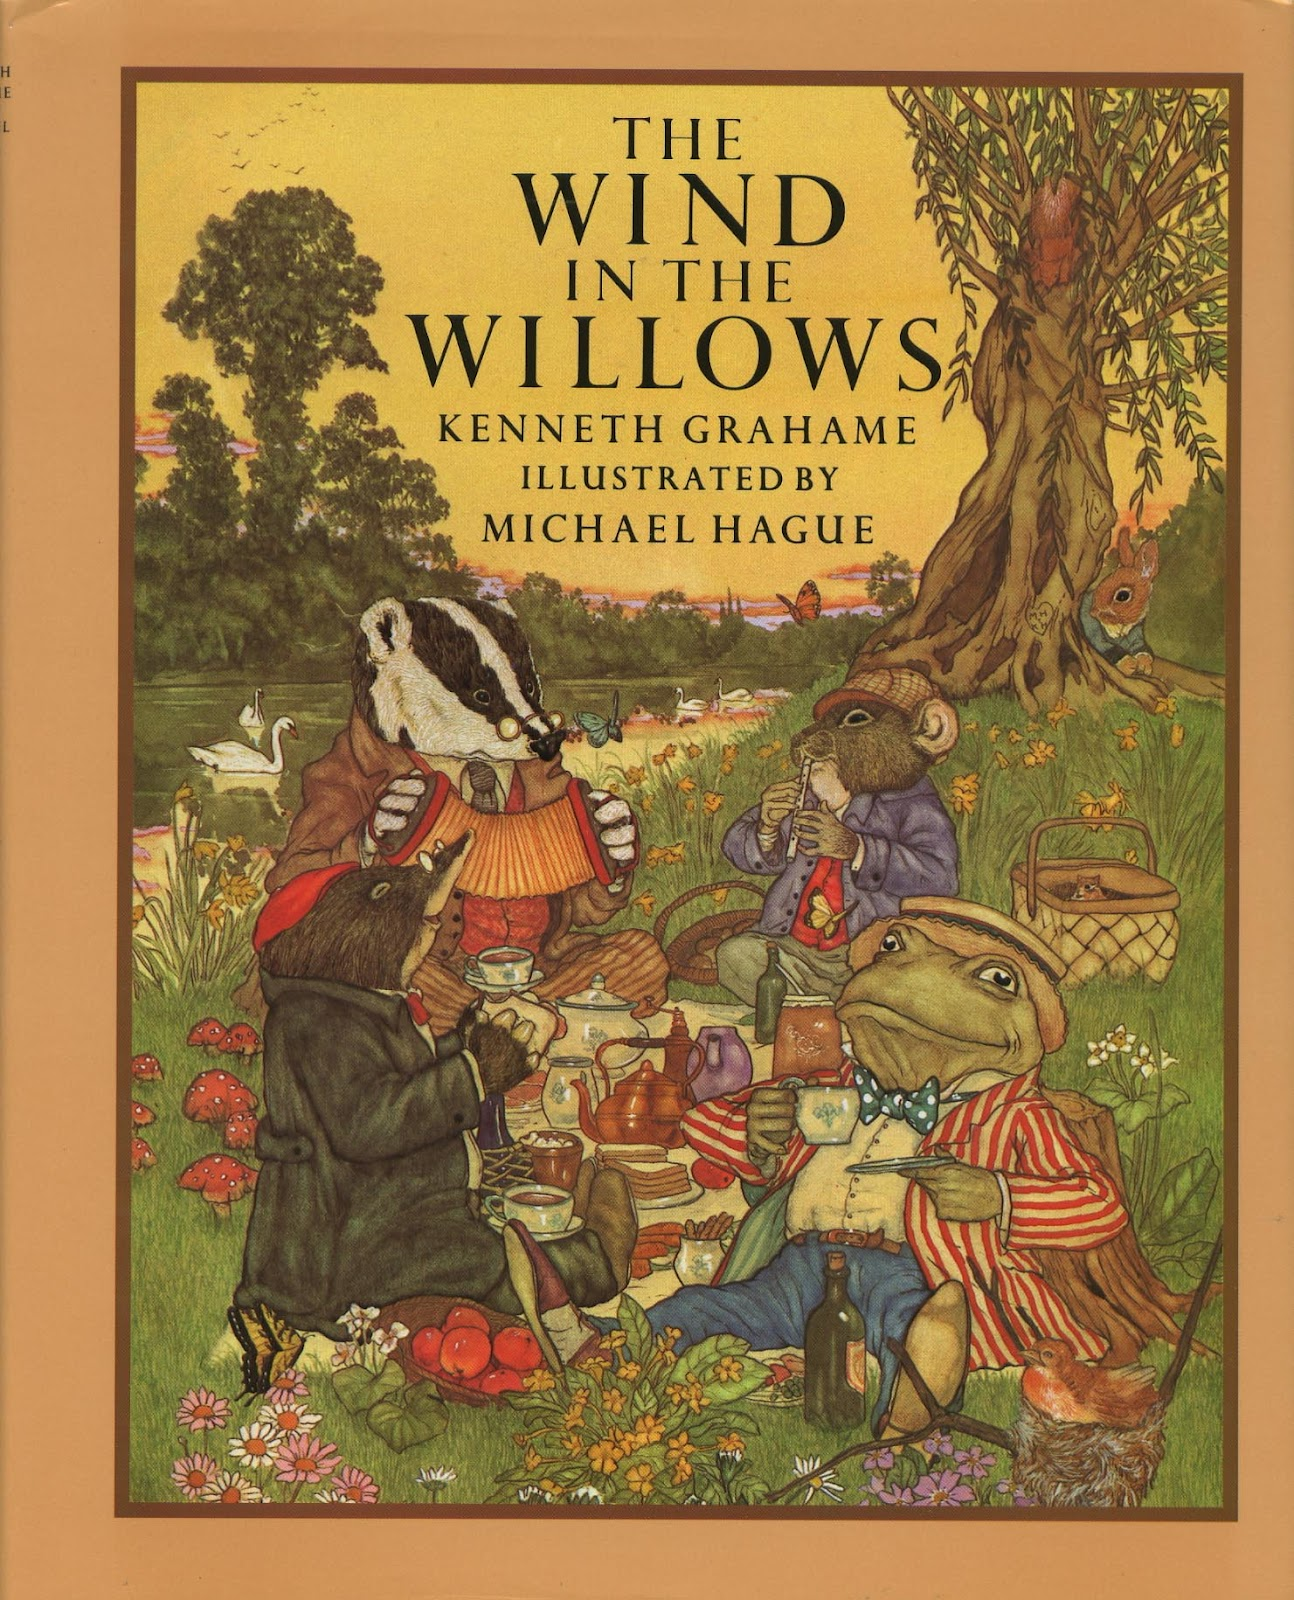 The Stone And The Star: Kenneth Grahame's The Wind In The